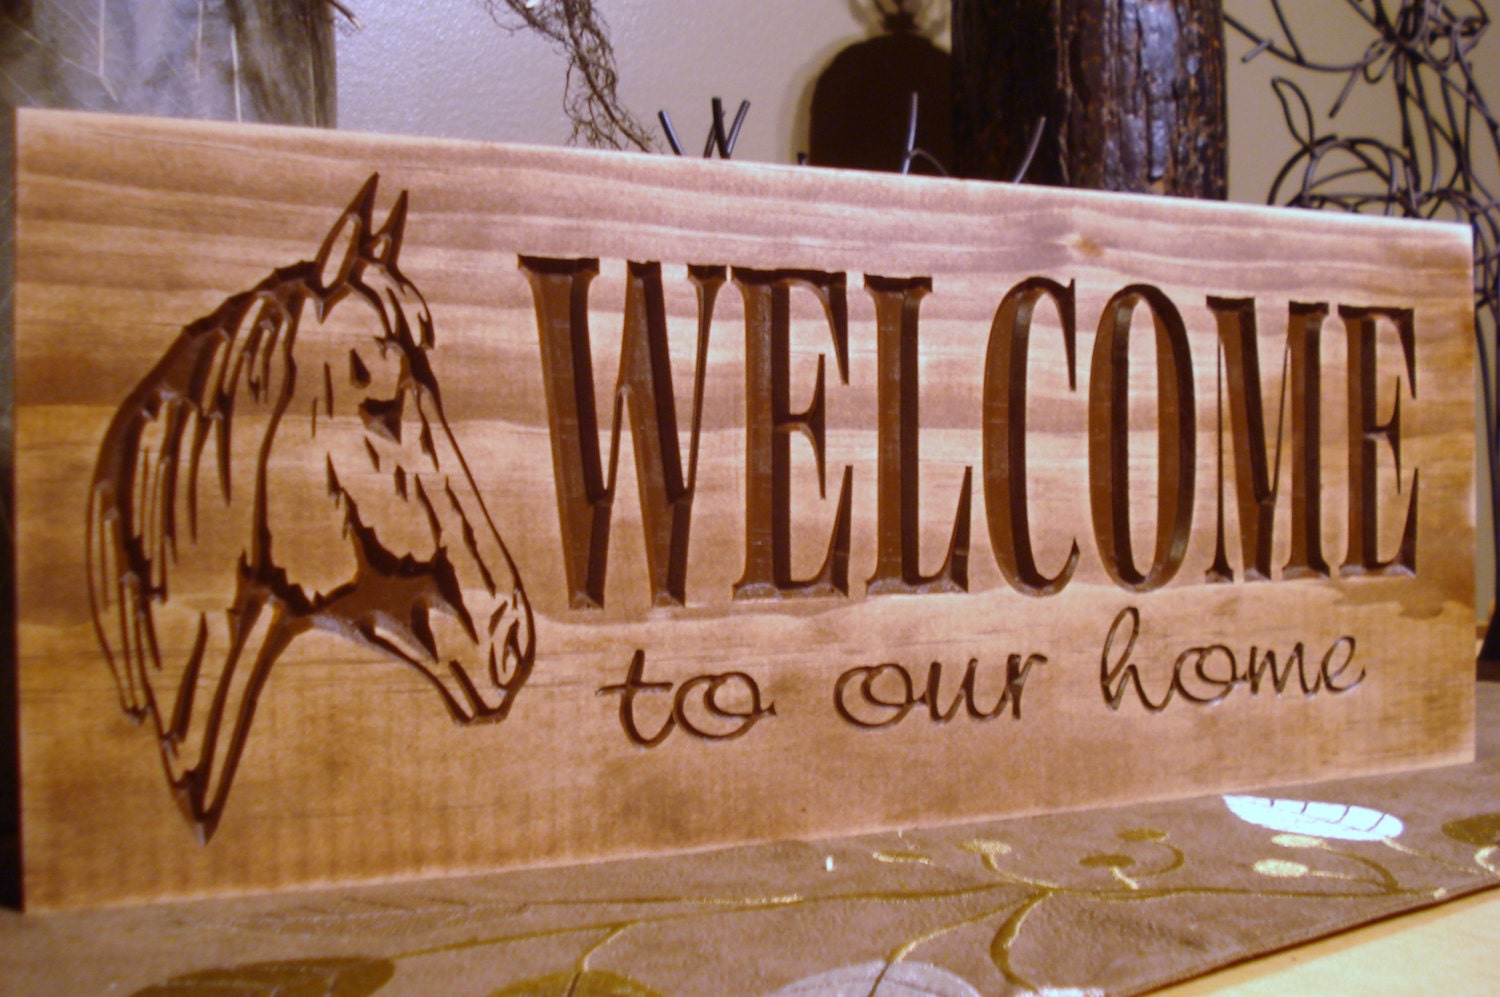 Wood Sign Design Ideas rustic door wood sign until god opens the next door praise him in Rustic Western Inspired Carved Wooden Welcome To Our Home Sign Rustic Horse Farm Ranch Design Best